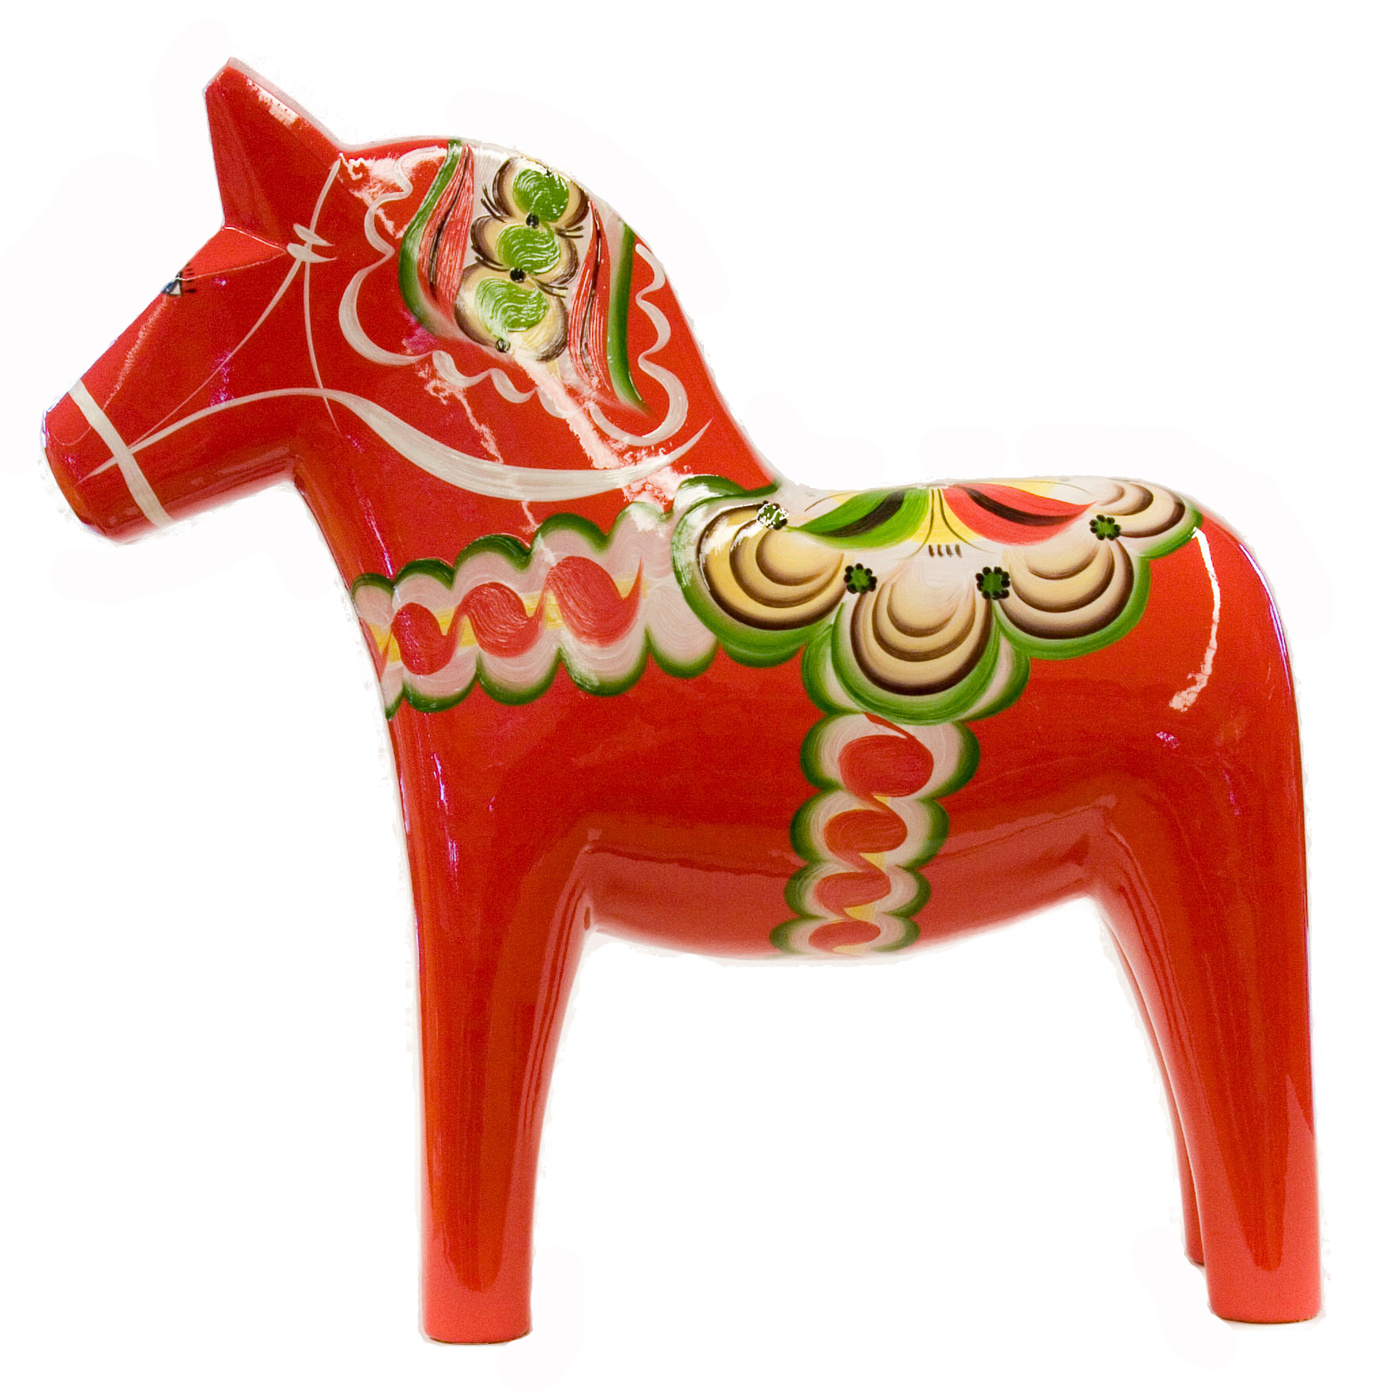 DALA Red Swedish Horse Votive Candle Holder Scandinavian NEW. Brand New. $ Buy It Now +$ shipping. SPONSORED. Antique Swedish Dala Horse. Folk Art Carved Sweden Hand Painted